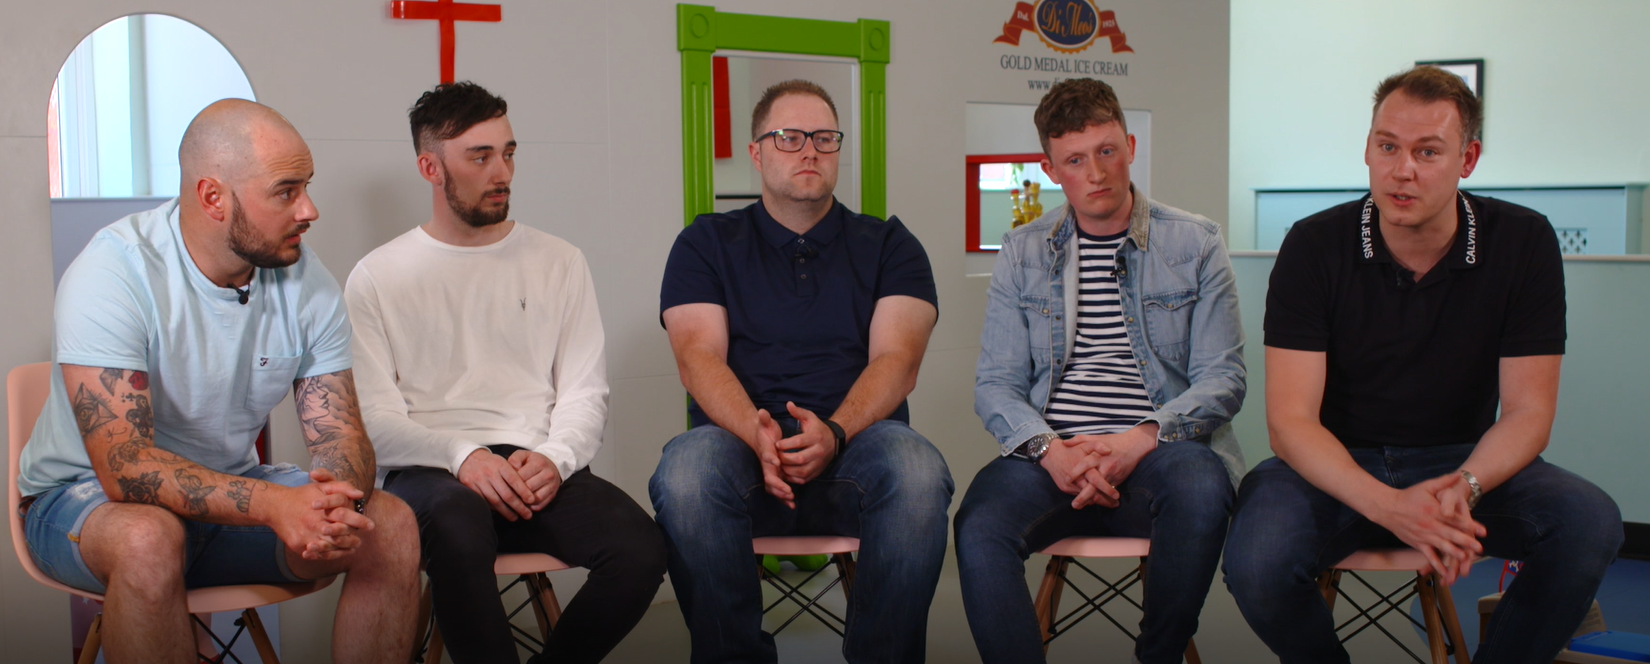 Hear what the Dads have to say